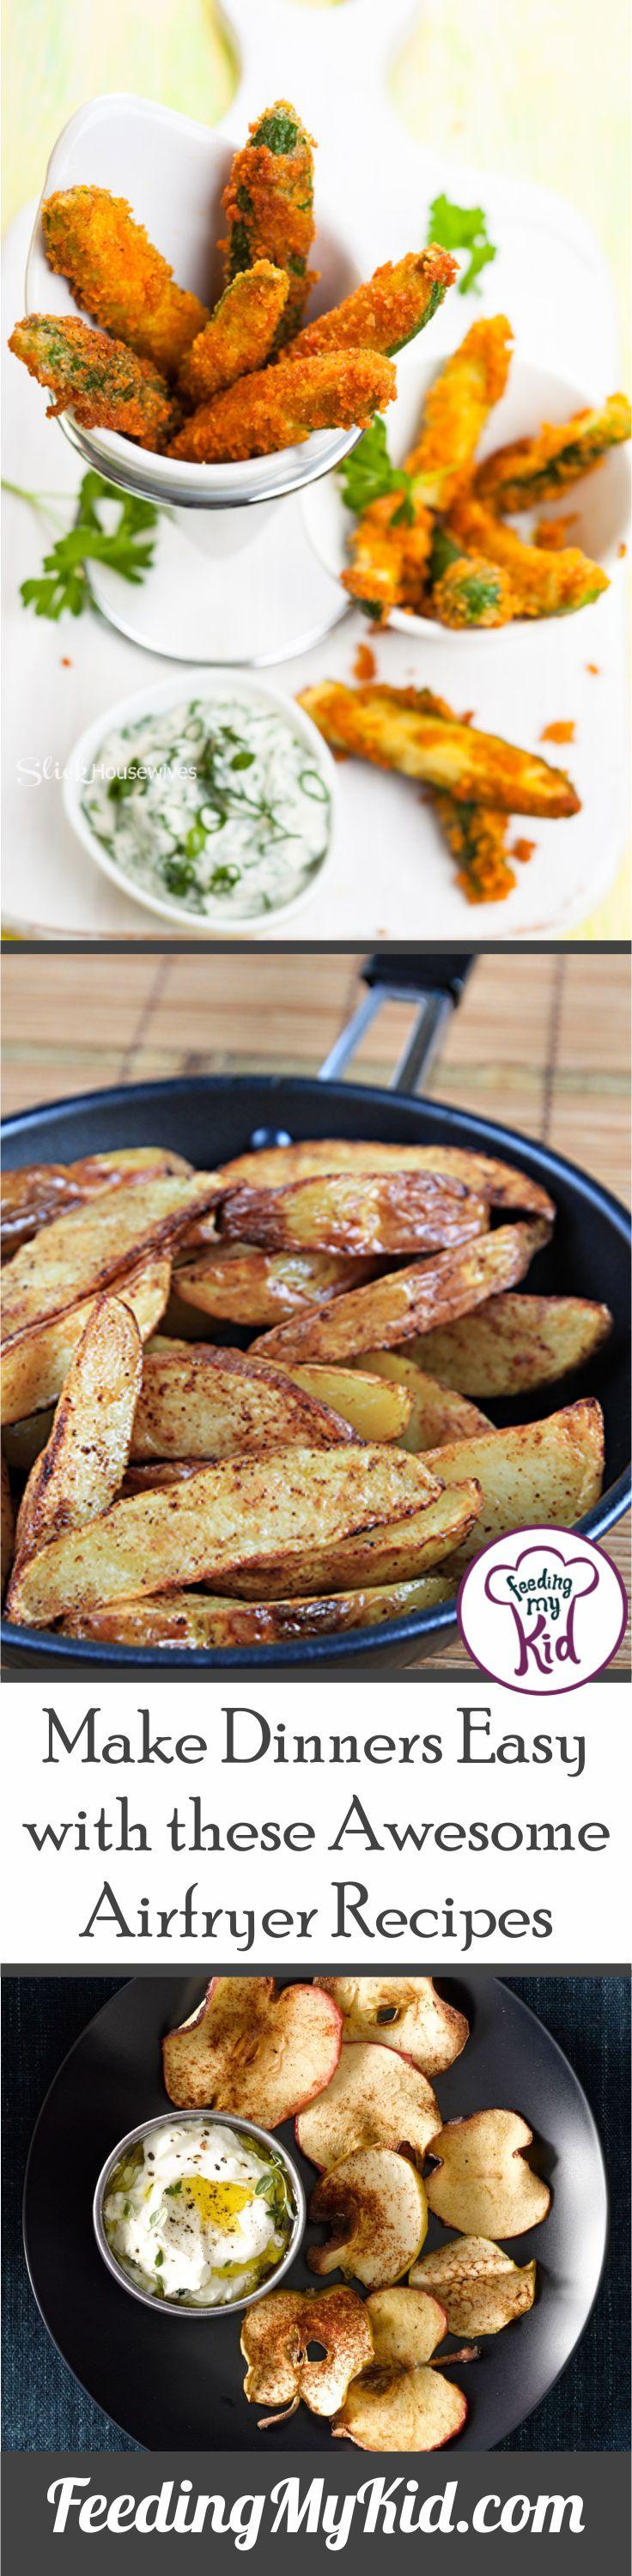 These awesome airfryer recipes are super simple and easy. You'll get that great crispy crunch without all the fat and oil.